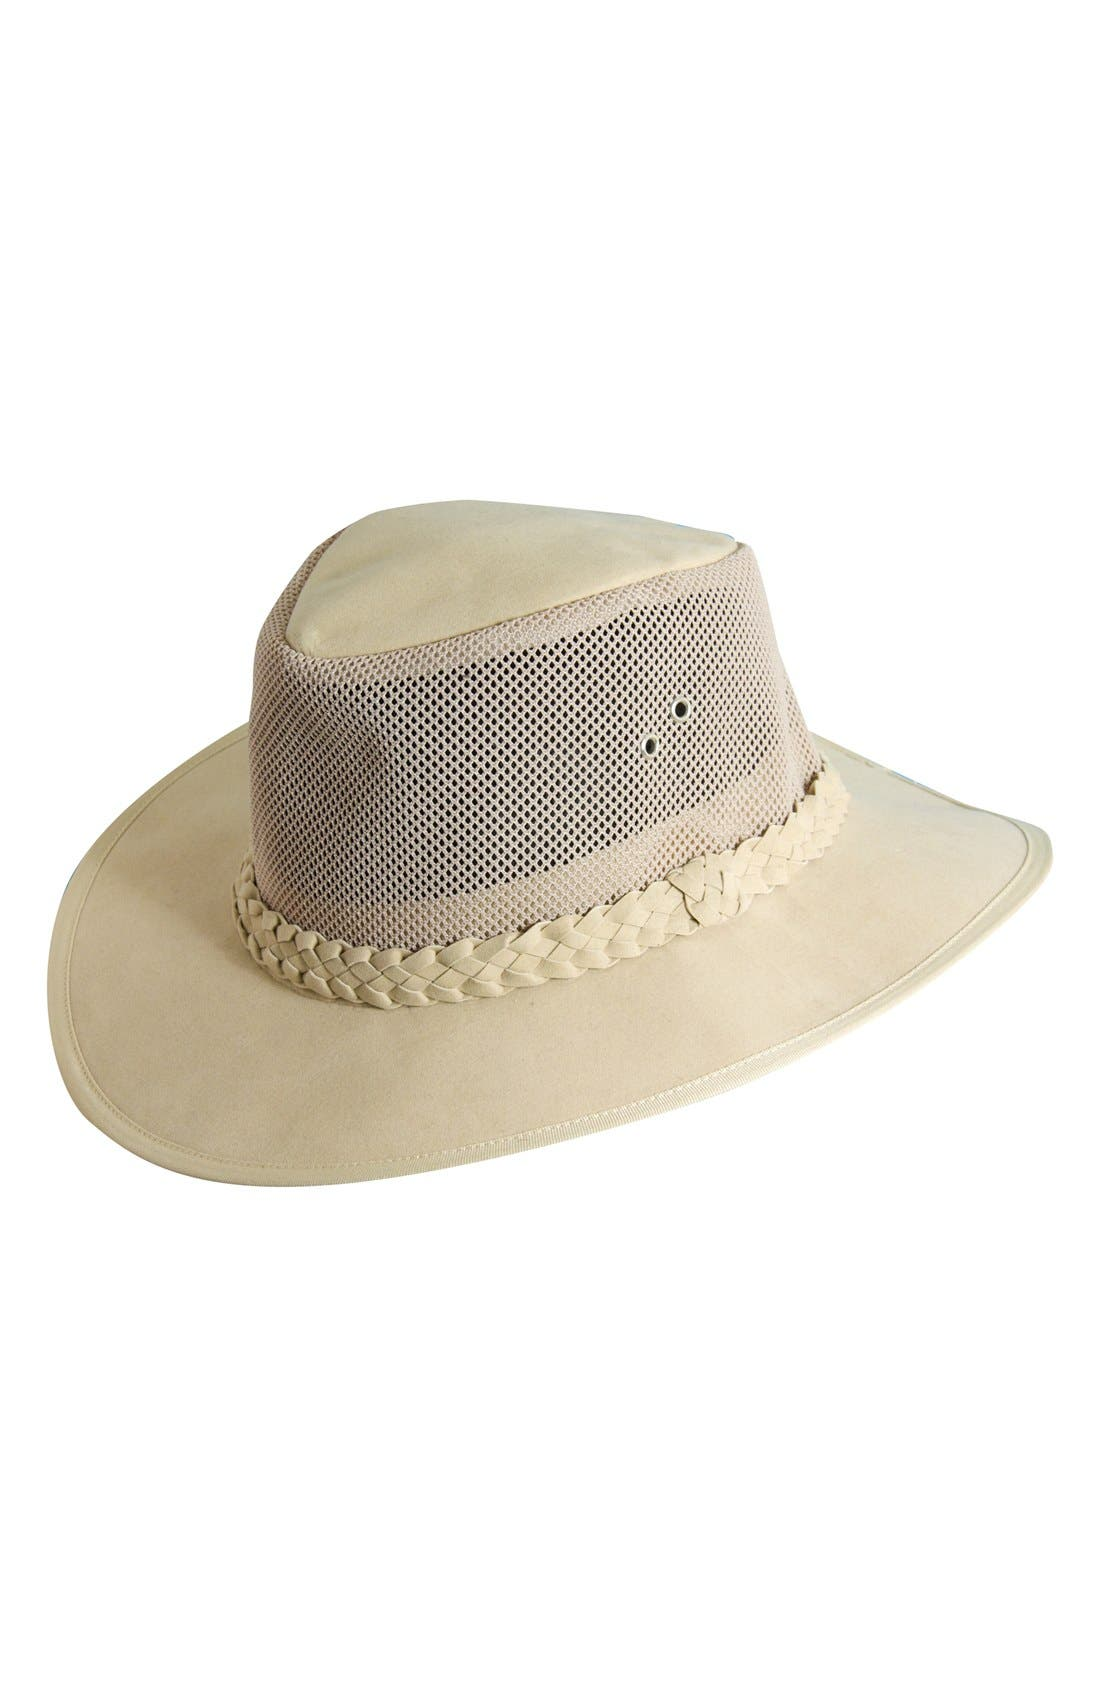 DORFMAN PACIFIC Soaker Hat